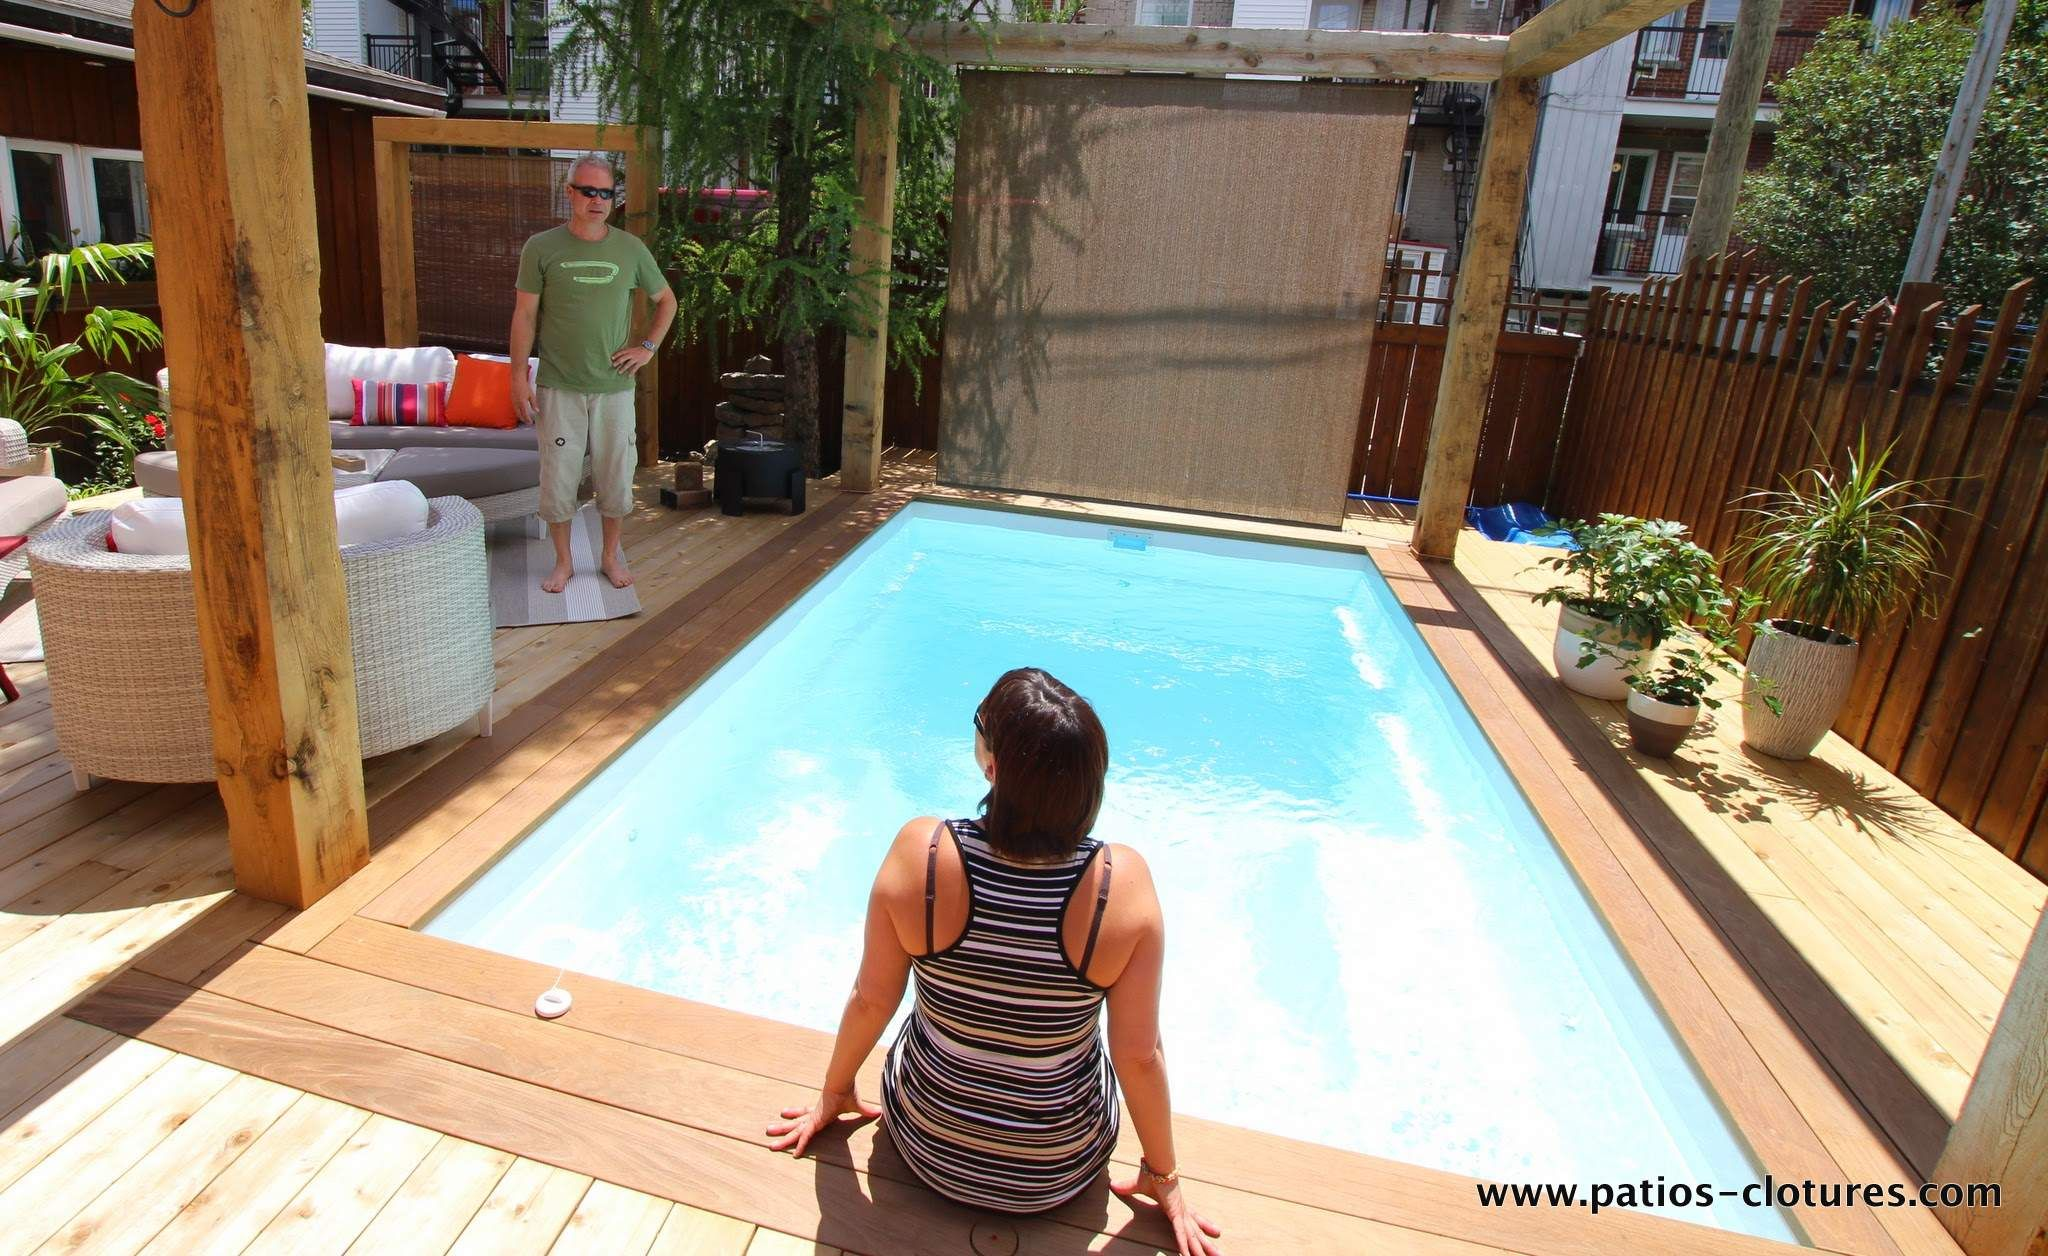 Patio en bois autour d 39 une piscine creus e fibro for Piscine researcher